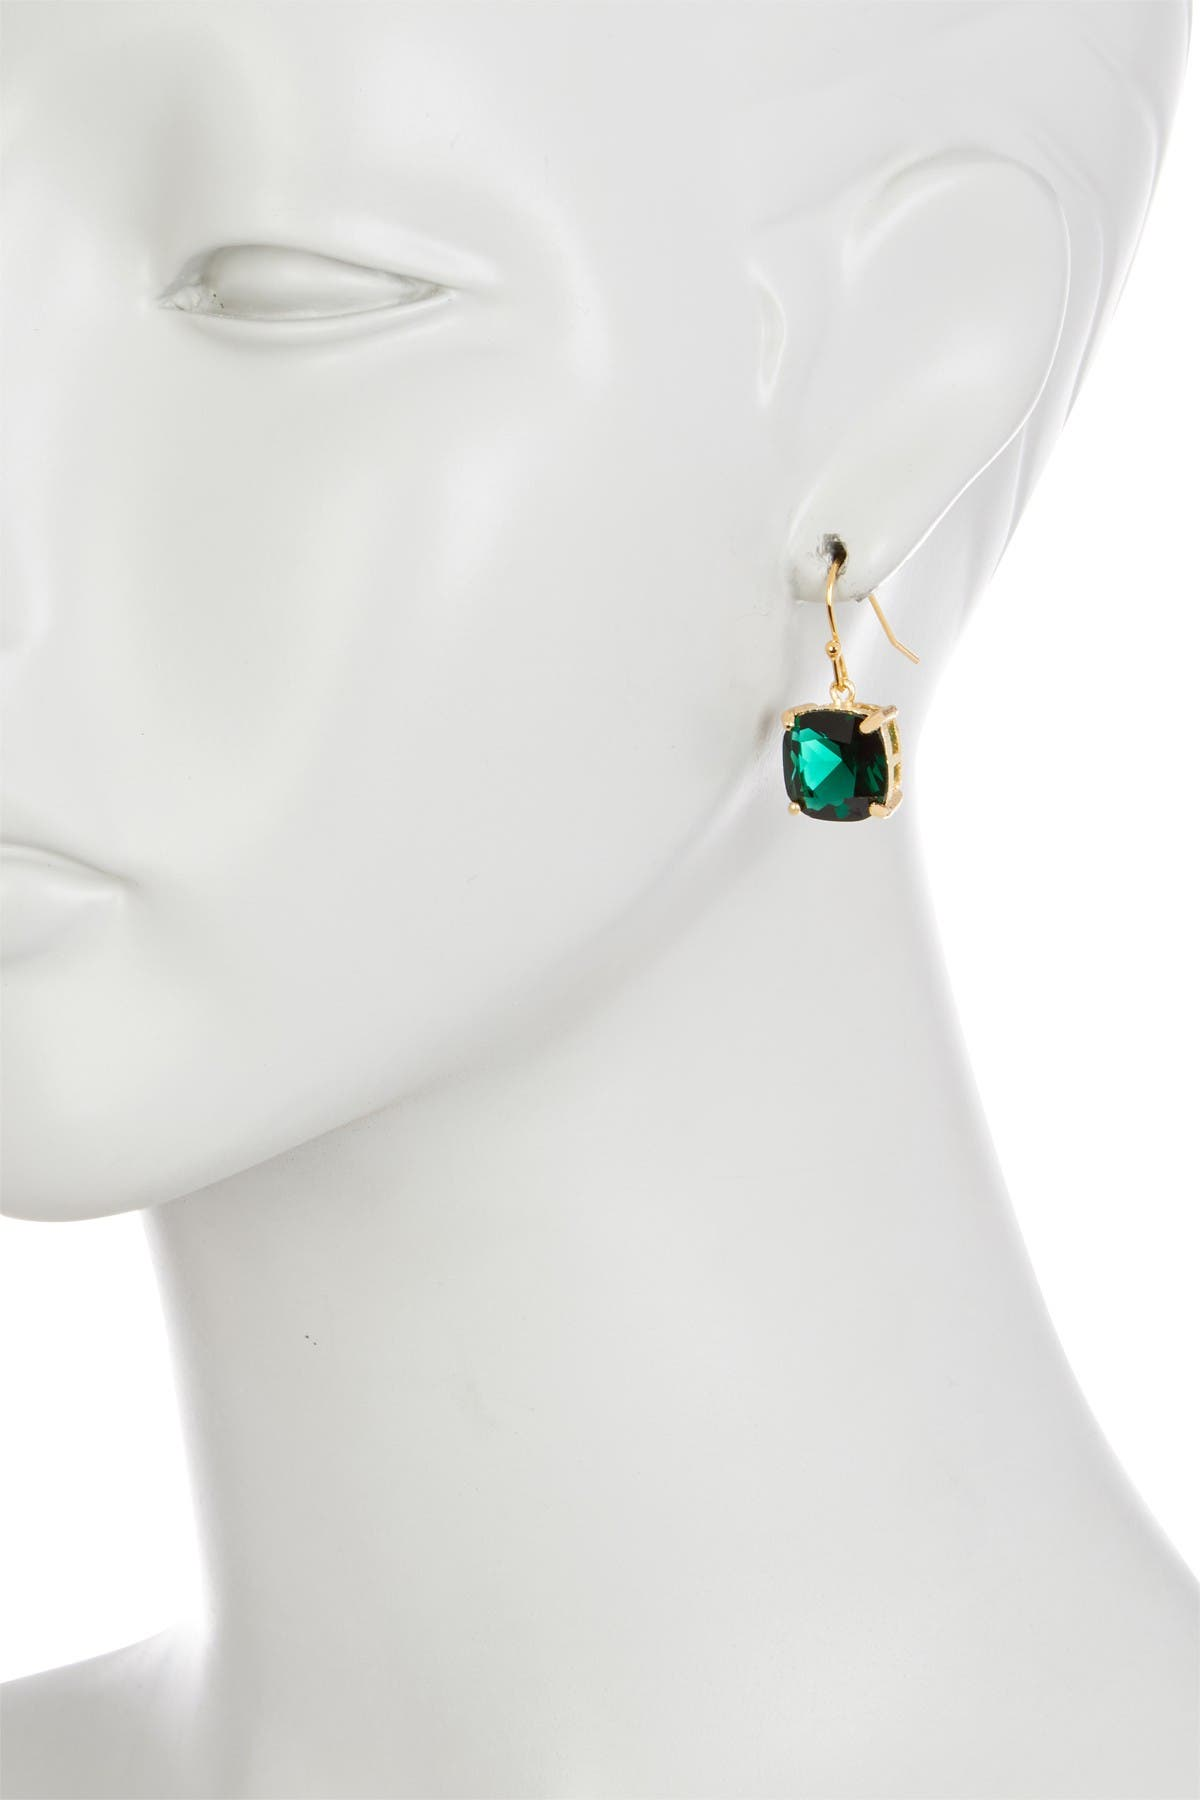 Image of Rivka Friedman 18K Gold Plated Emerald Crystal Drop Earrings